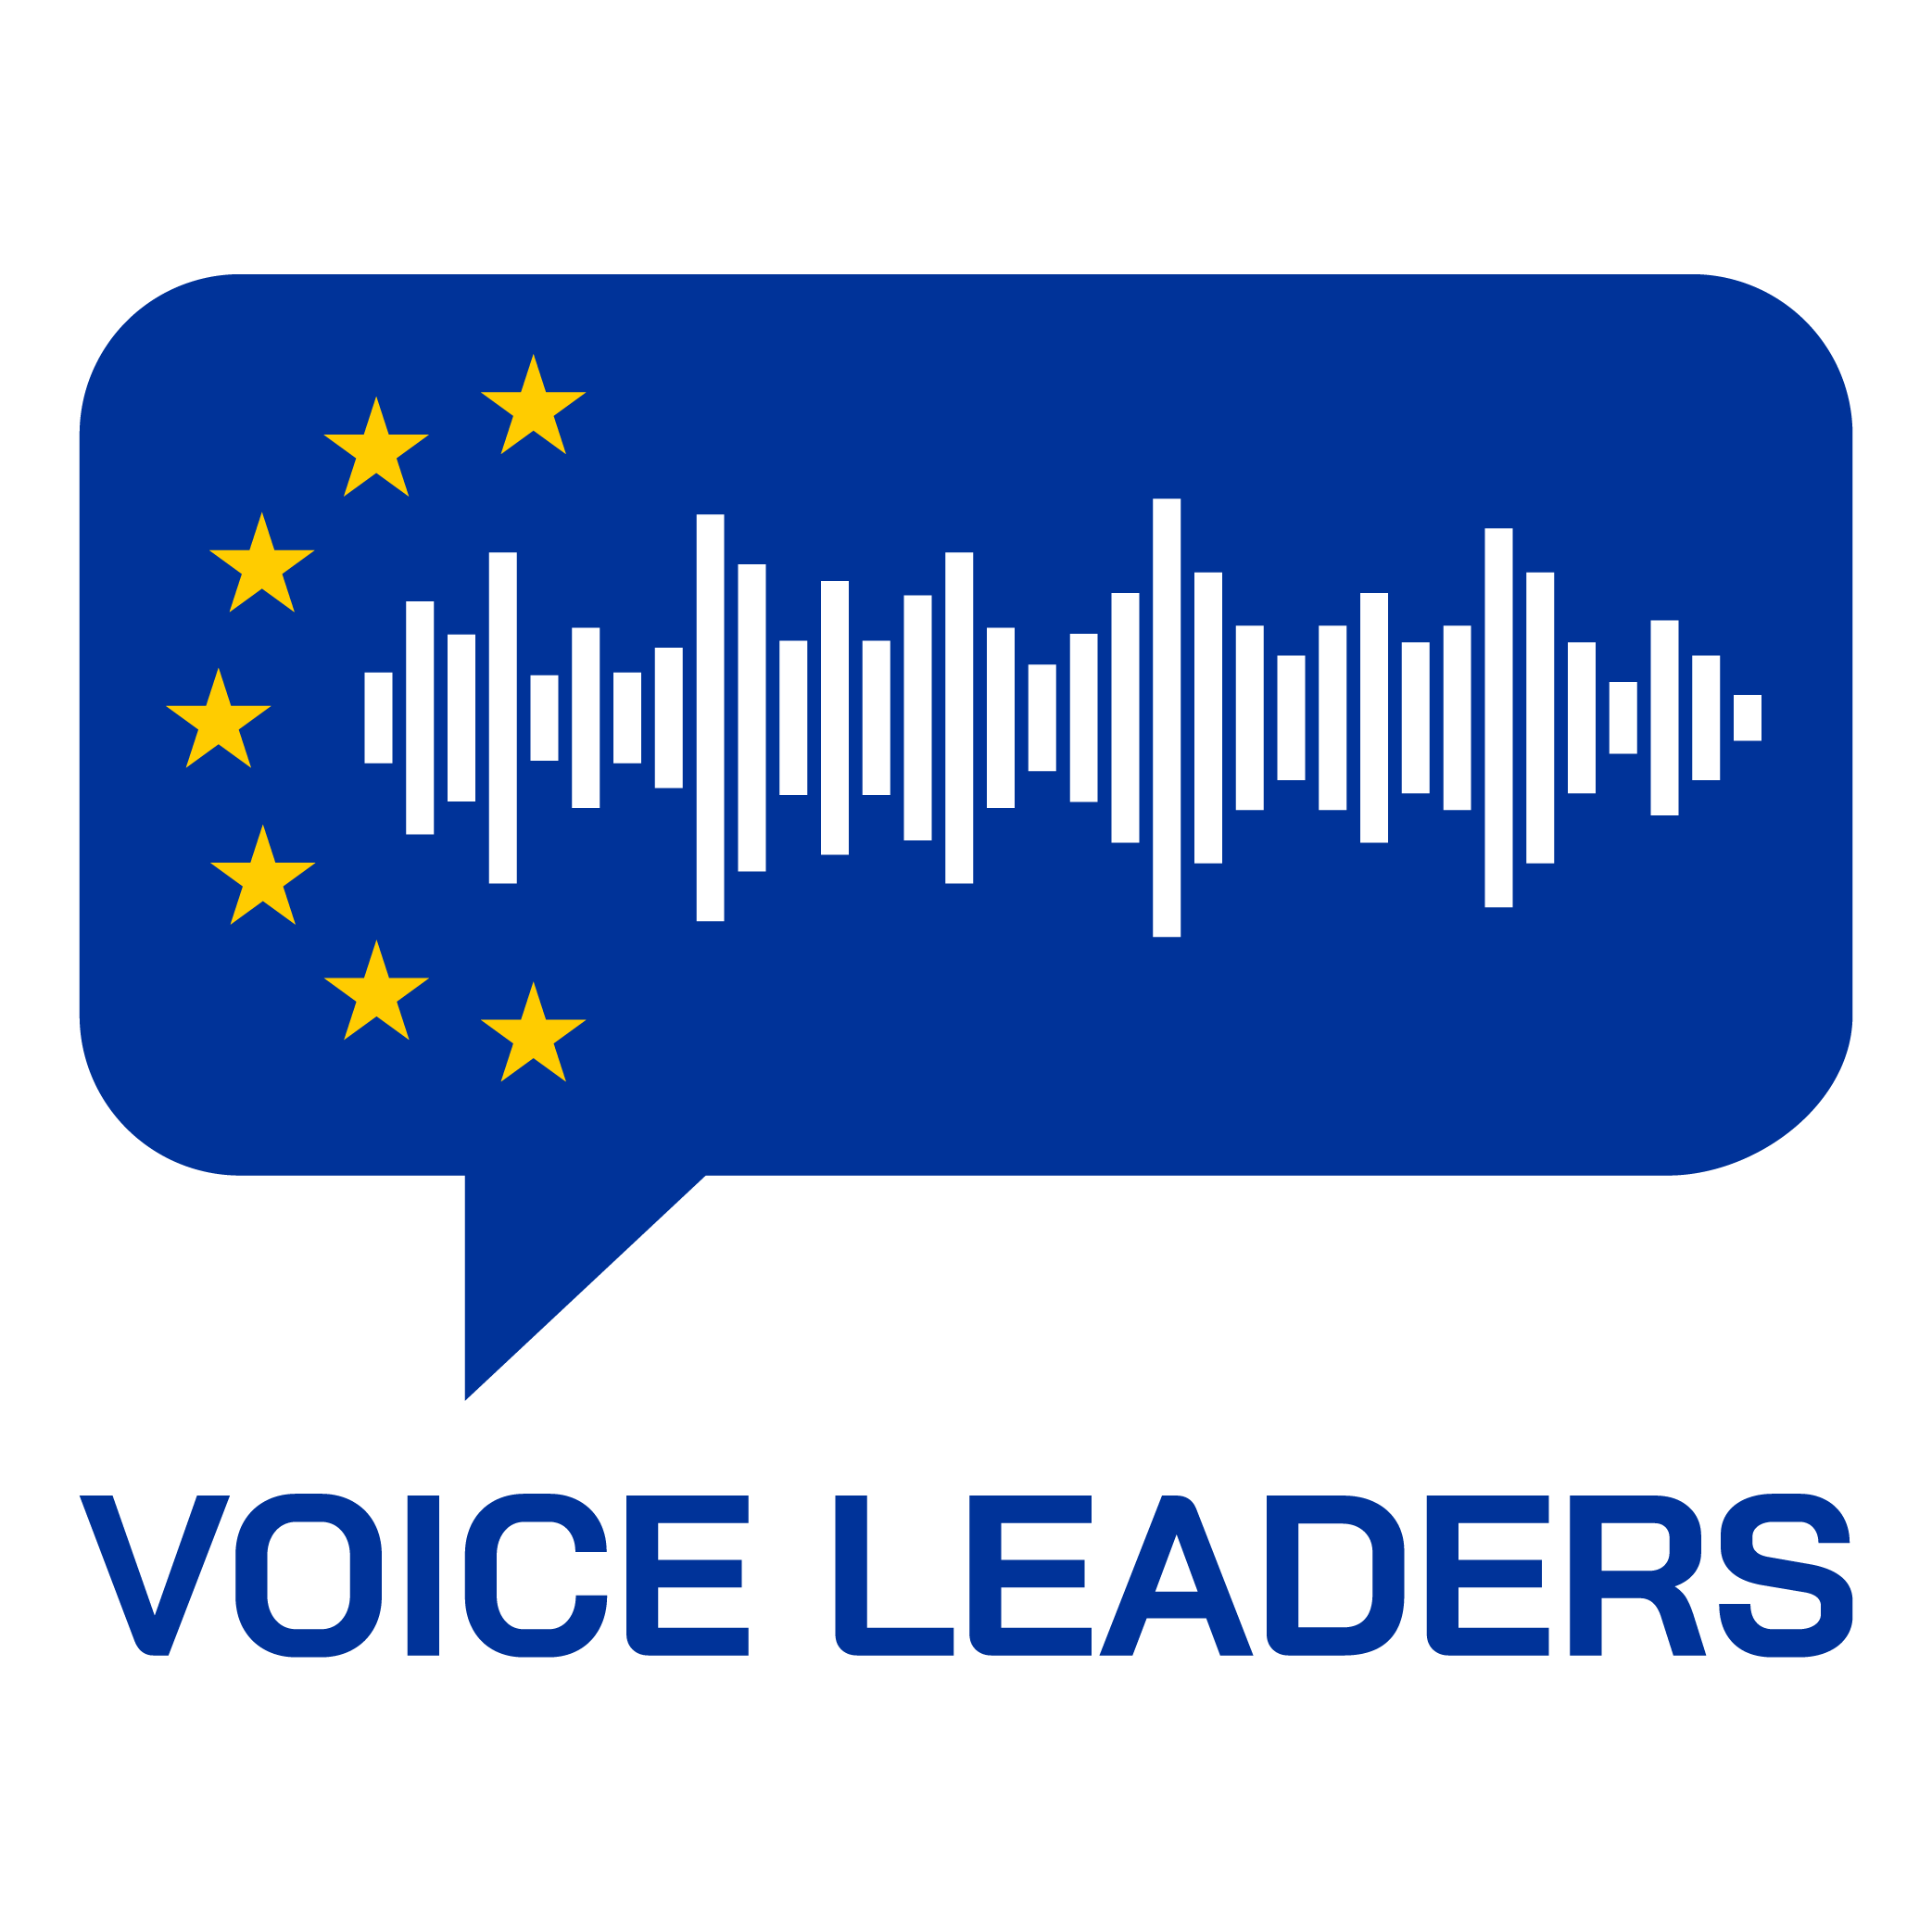 Voice Leaders